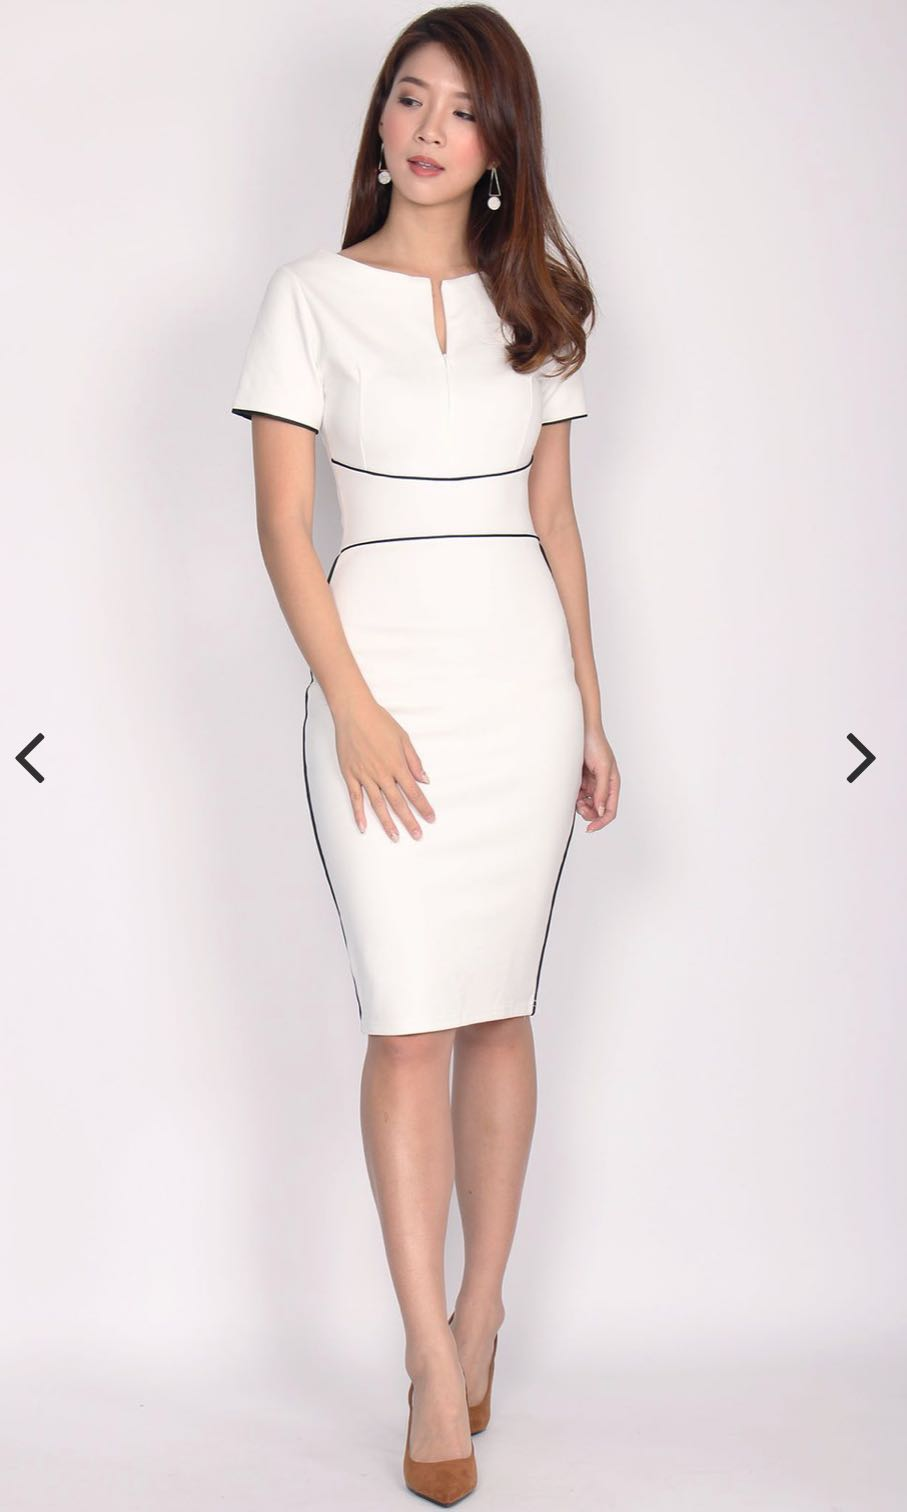 dc40dcb72c TDC Janae Zip Up Border Pencil Dress In White, Women's Fashion, Clothes,  Dresses & Skirts on Carousell